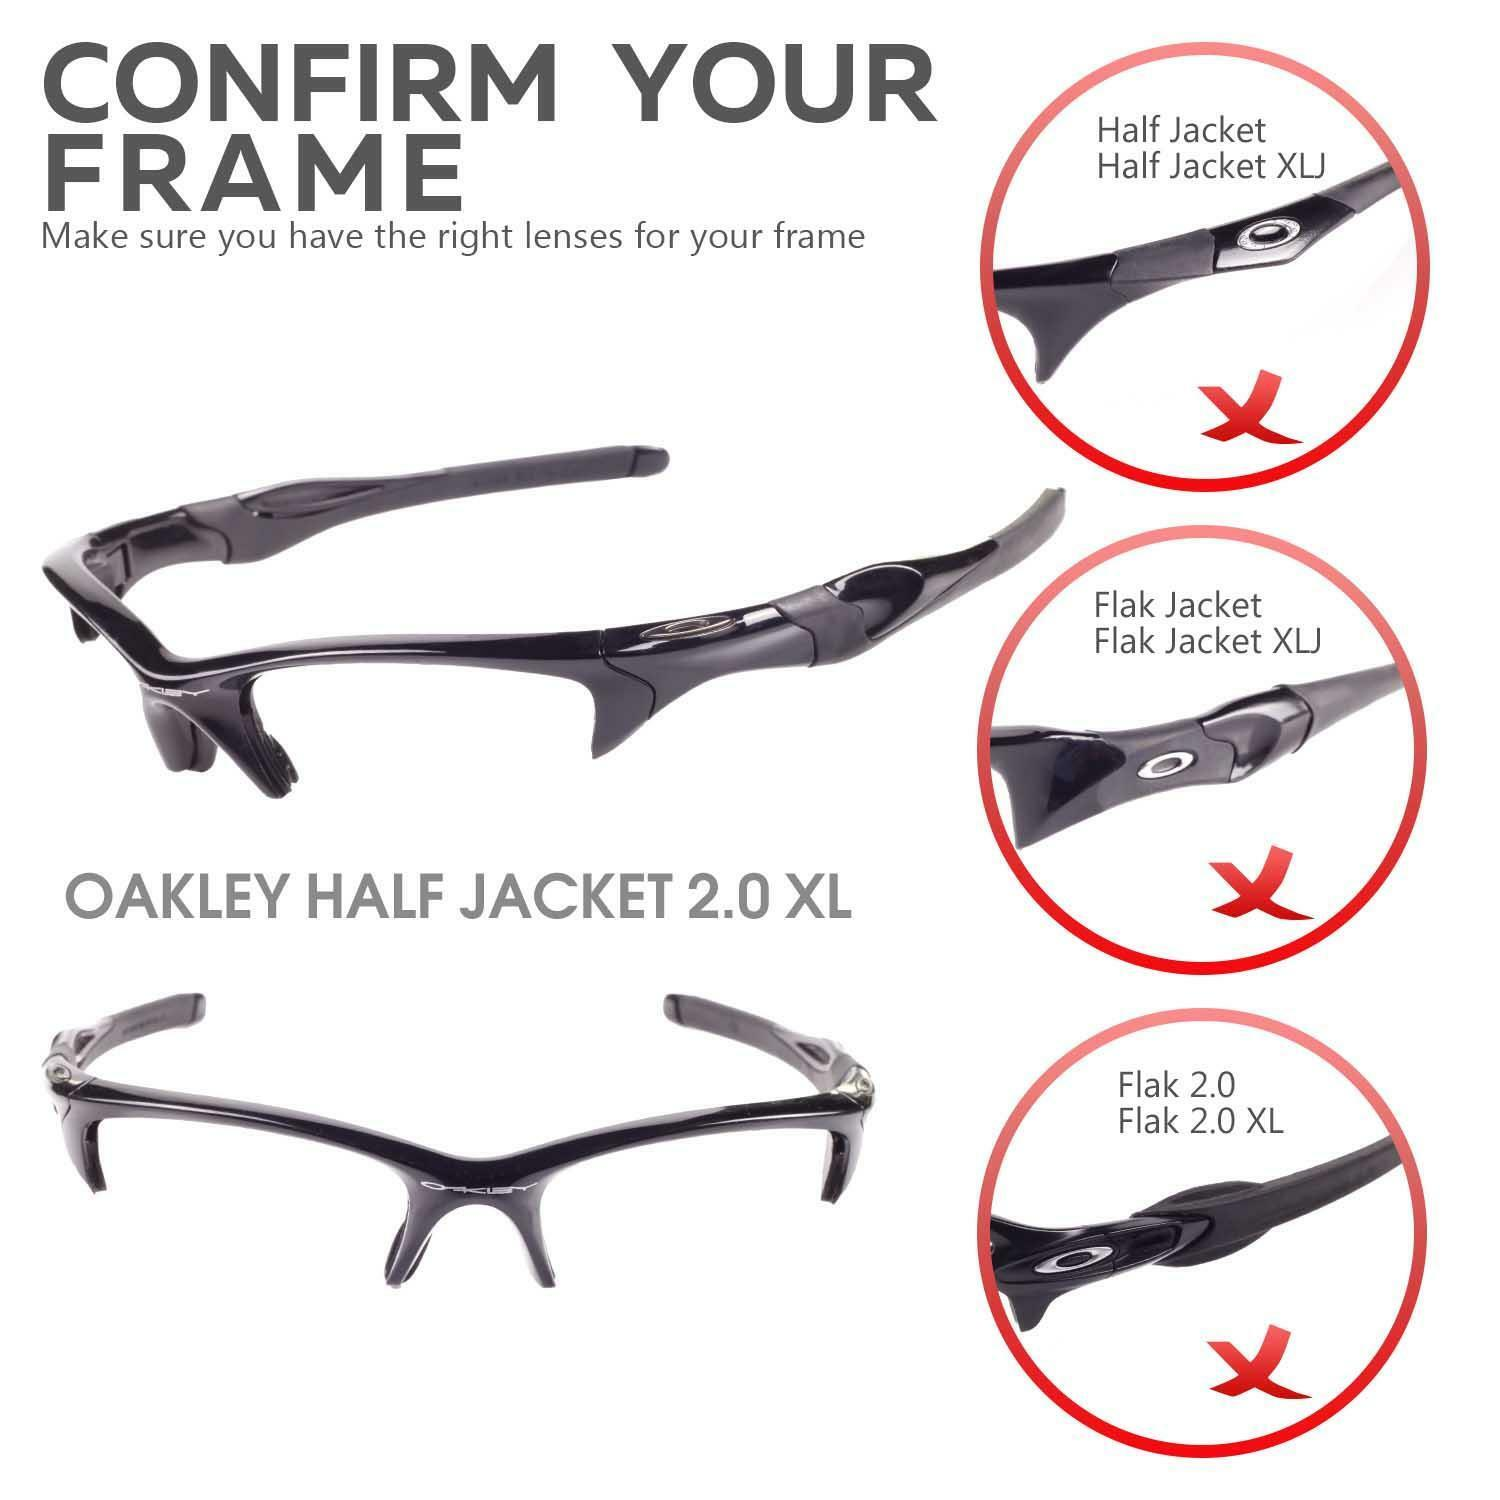 Half Jacket 2 0 >> Wl Polarized Emerald Lenses And Rubber Kit For Oakley Half Jacket 2 0 Xl